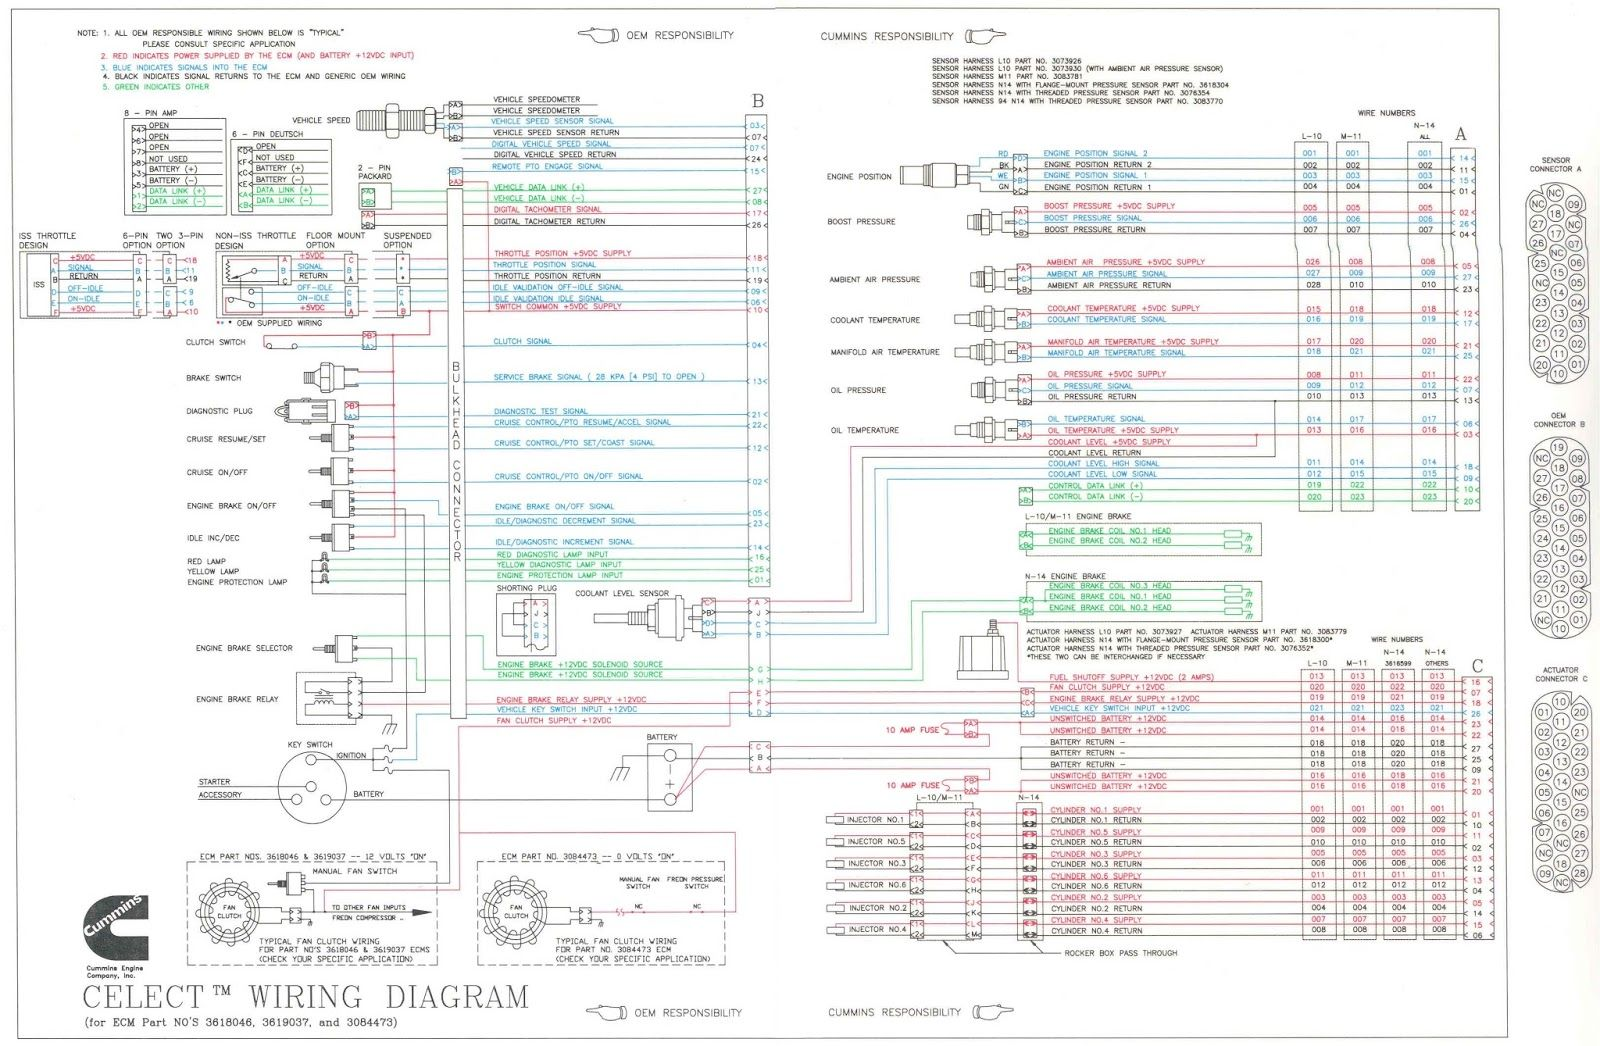 medium resolution of n14 celect ecm wiring diagram wiring diagram details cummins n14 celect ecm wiring diagram n14 celect